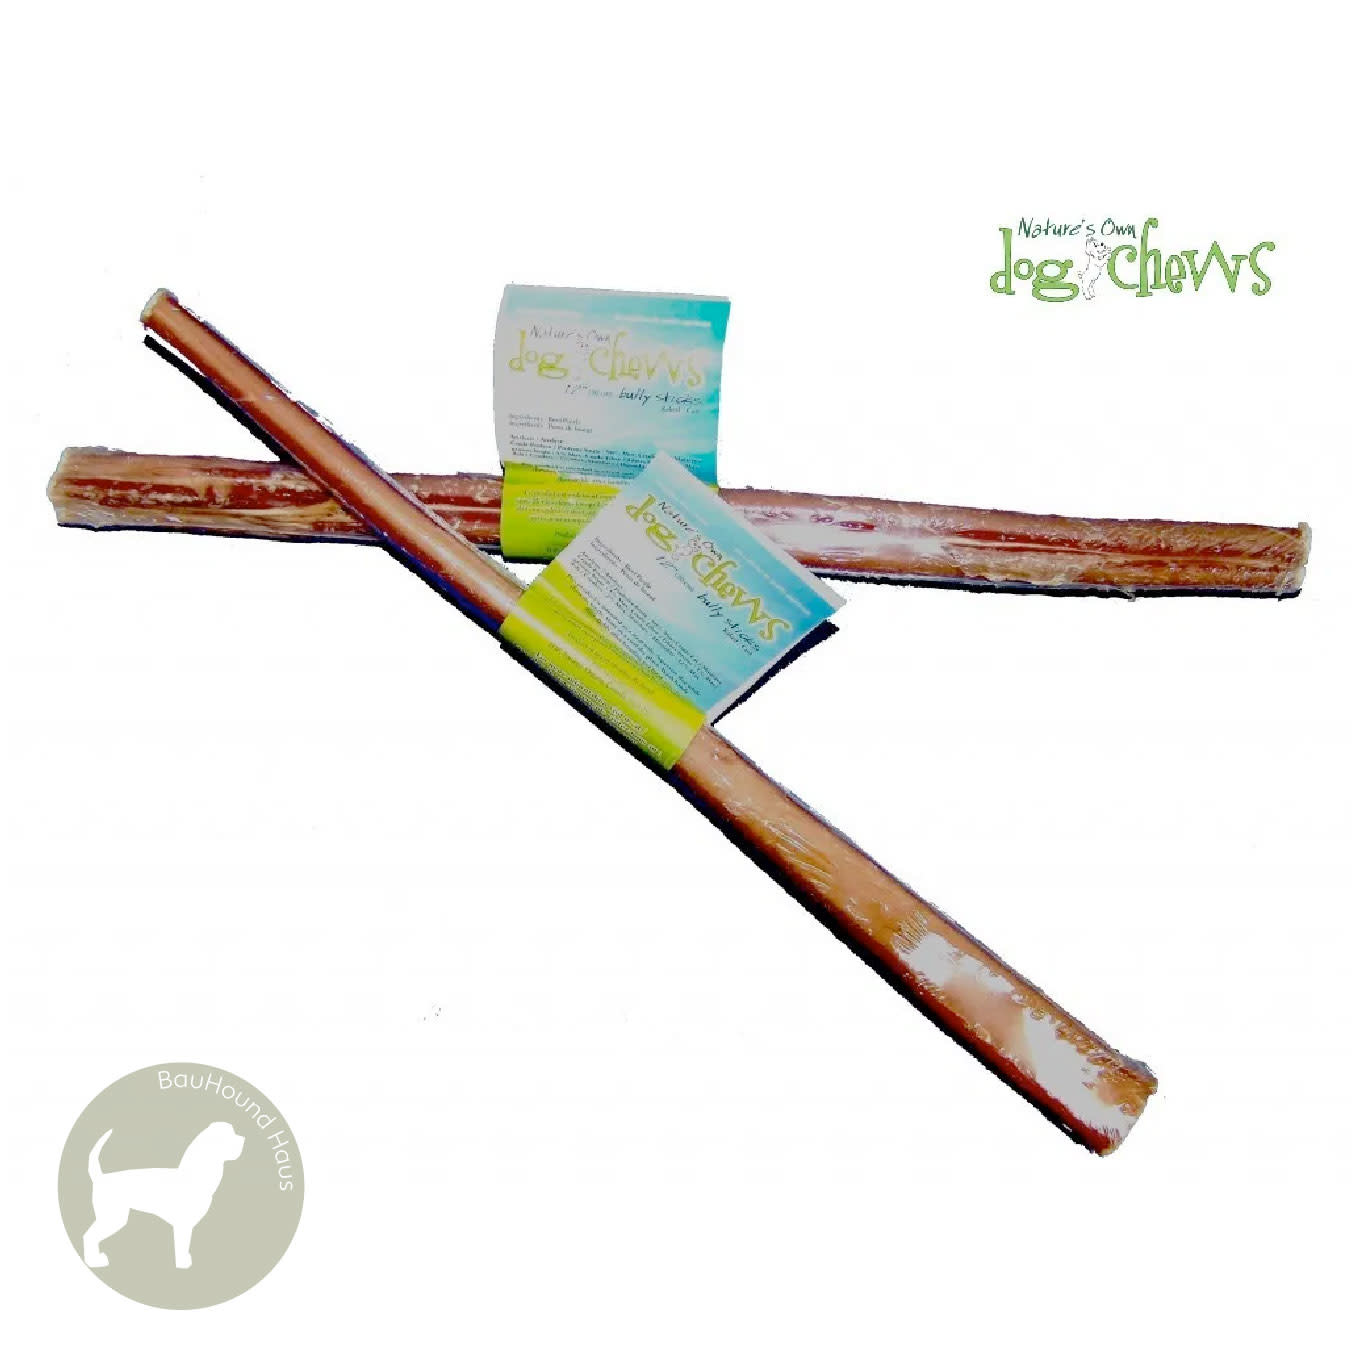 Nature's Own Nature's Own Jumbo Beef Bully Stick, 12 inch